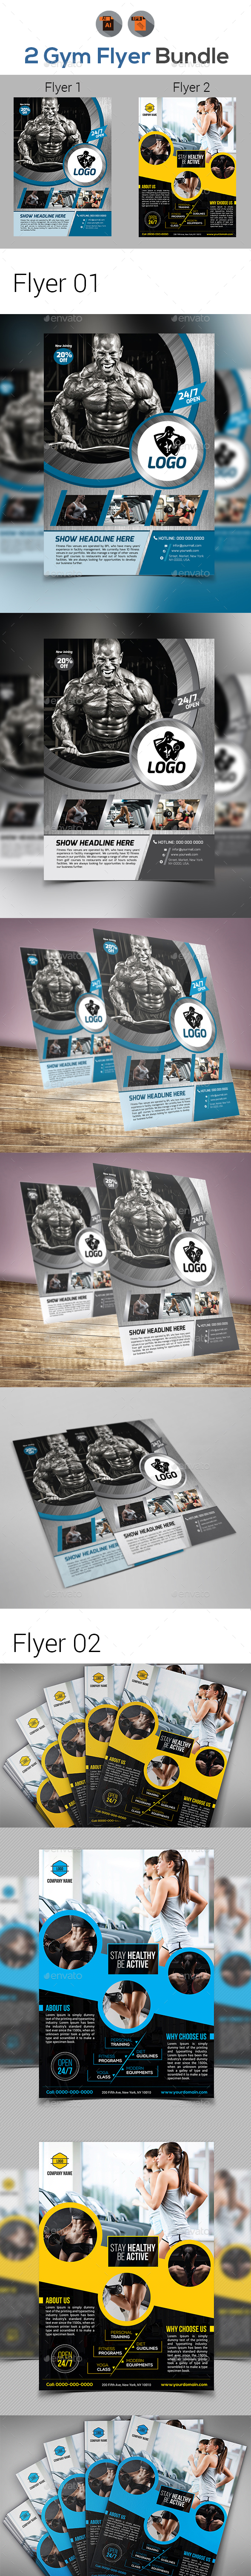 Gym Flyer Bundle - Corporate Flyers